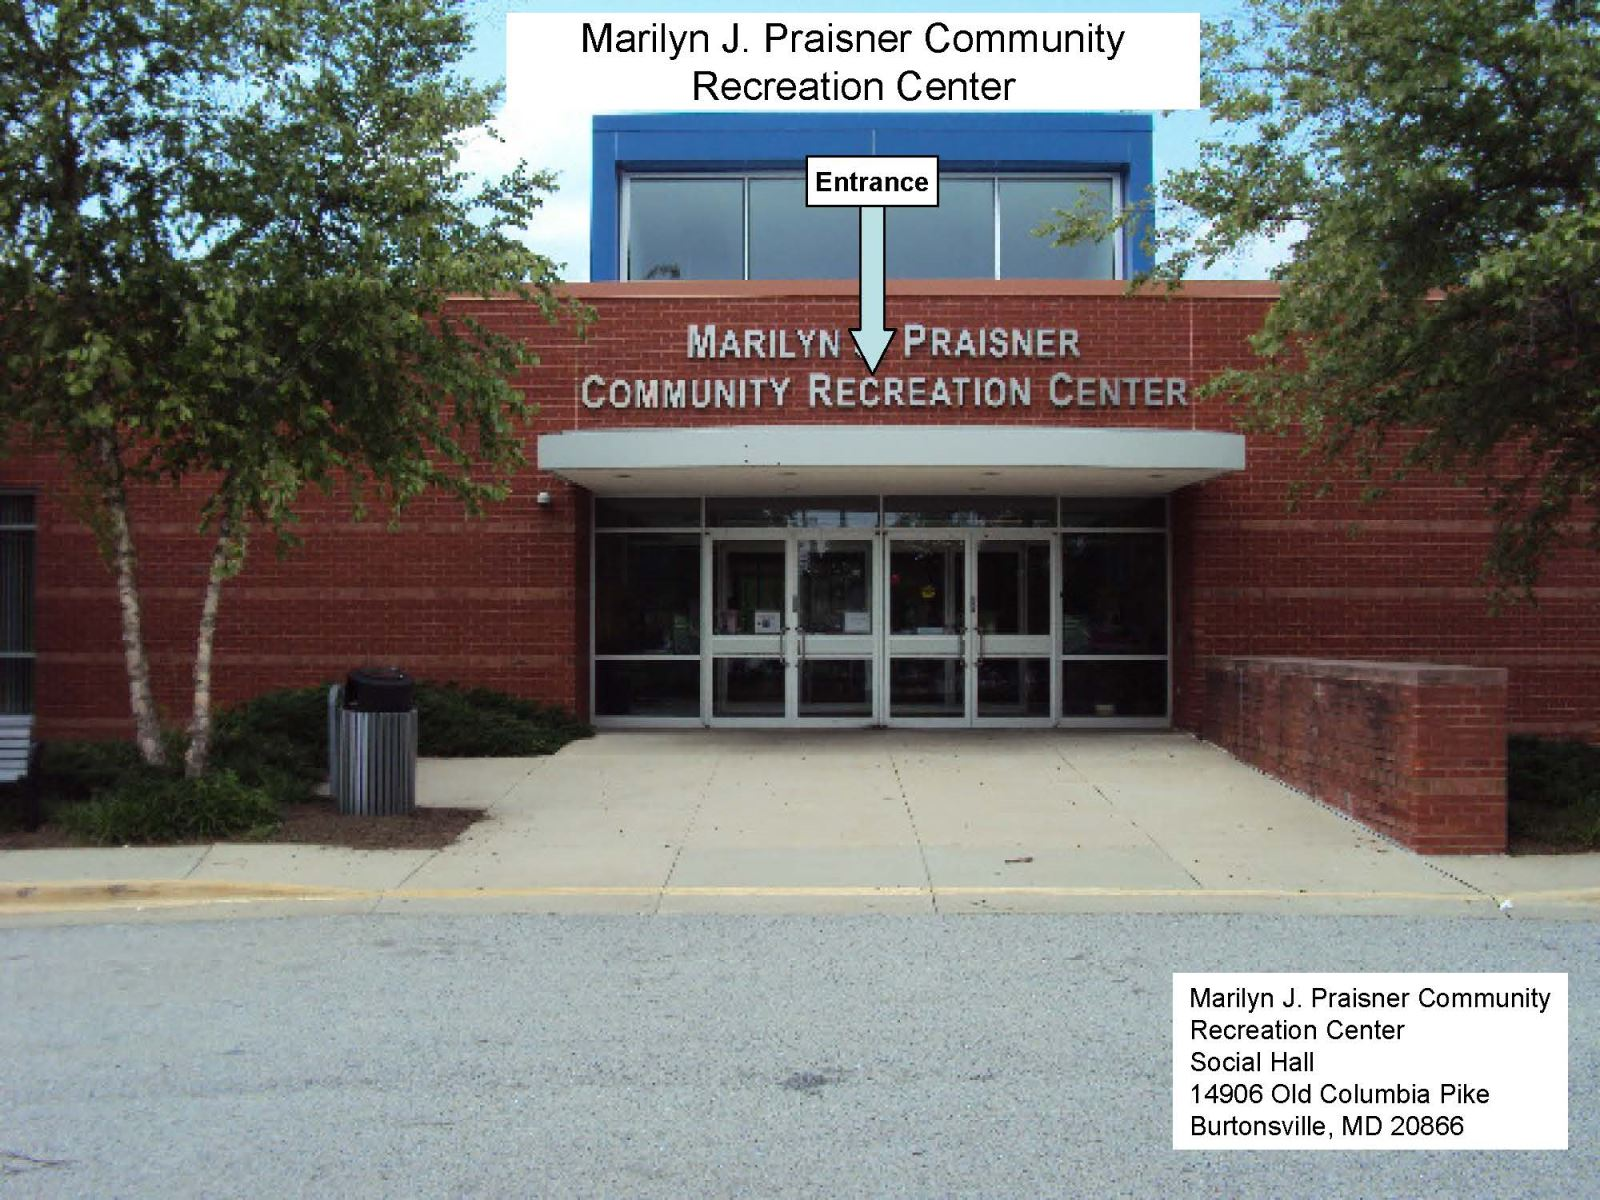 Marilyn Praisner Community Rec Center